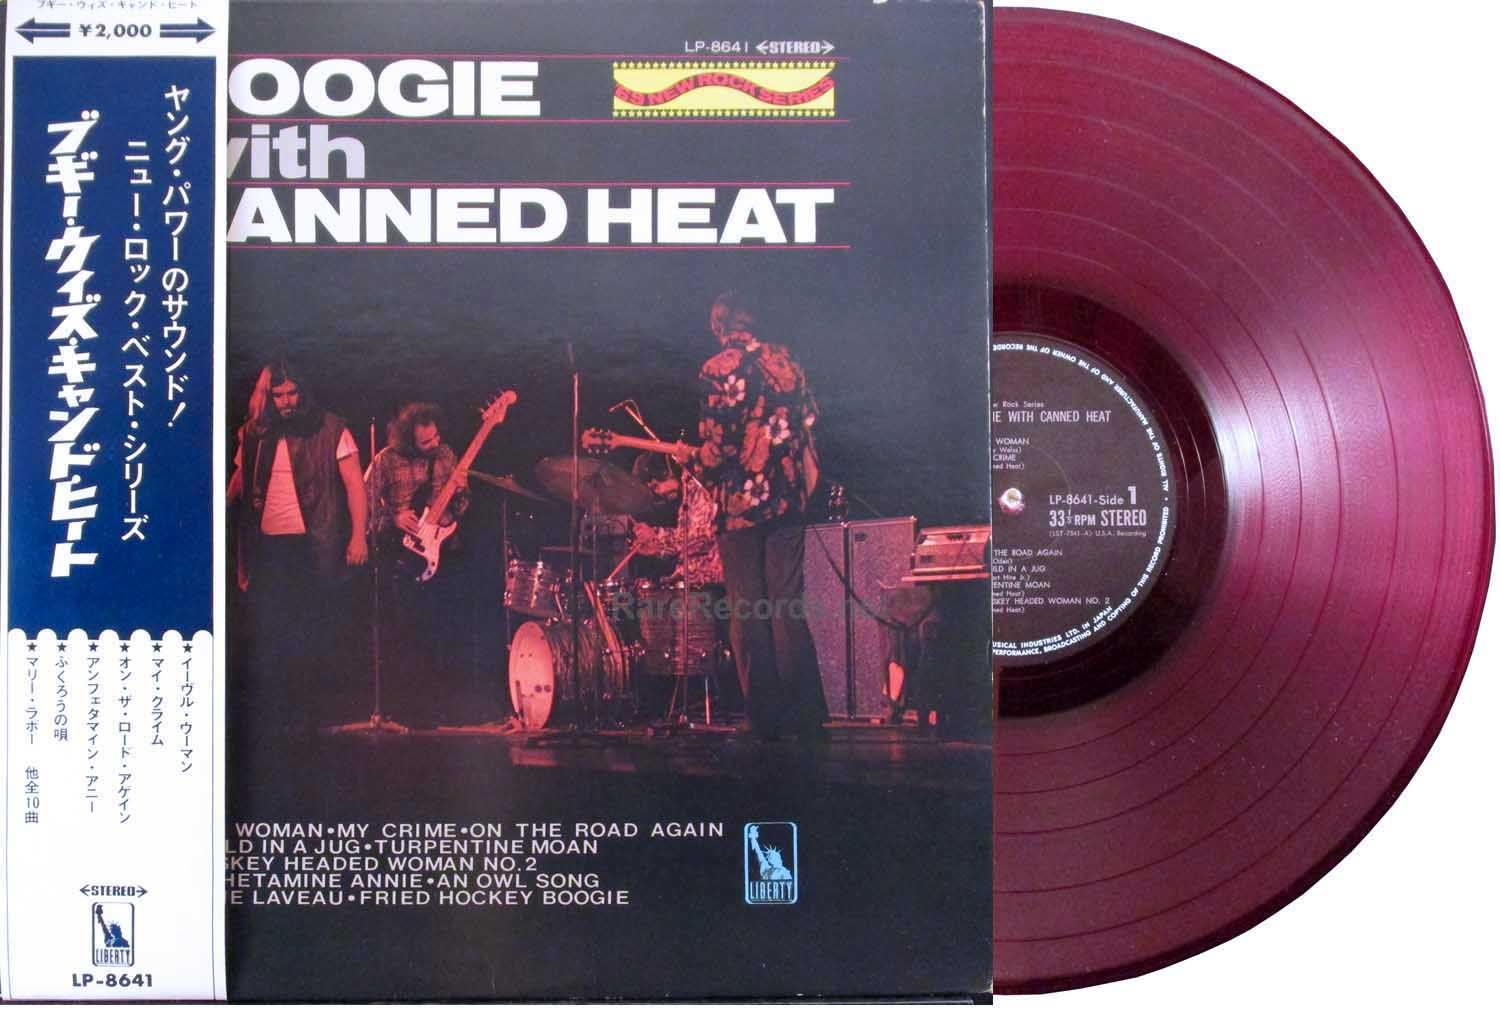 Canned Heat Boogie With Canned Heat Liberty Records 1968 Rare 1968 Japanese Version Of The Album Pressed On Red Vinyl Canned Heat R B Albums Rare Records